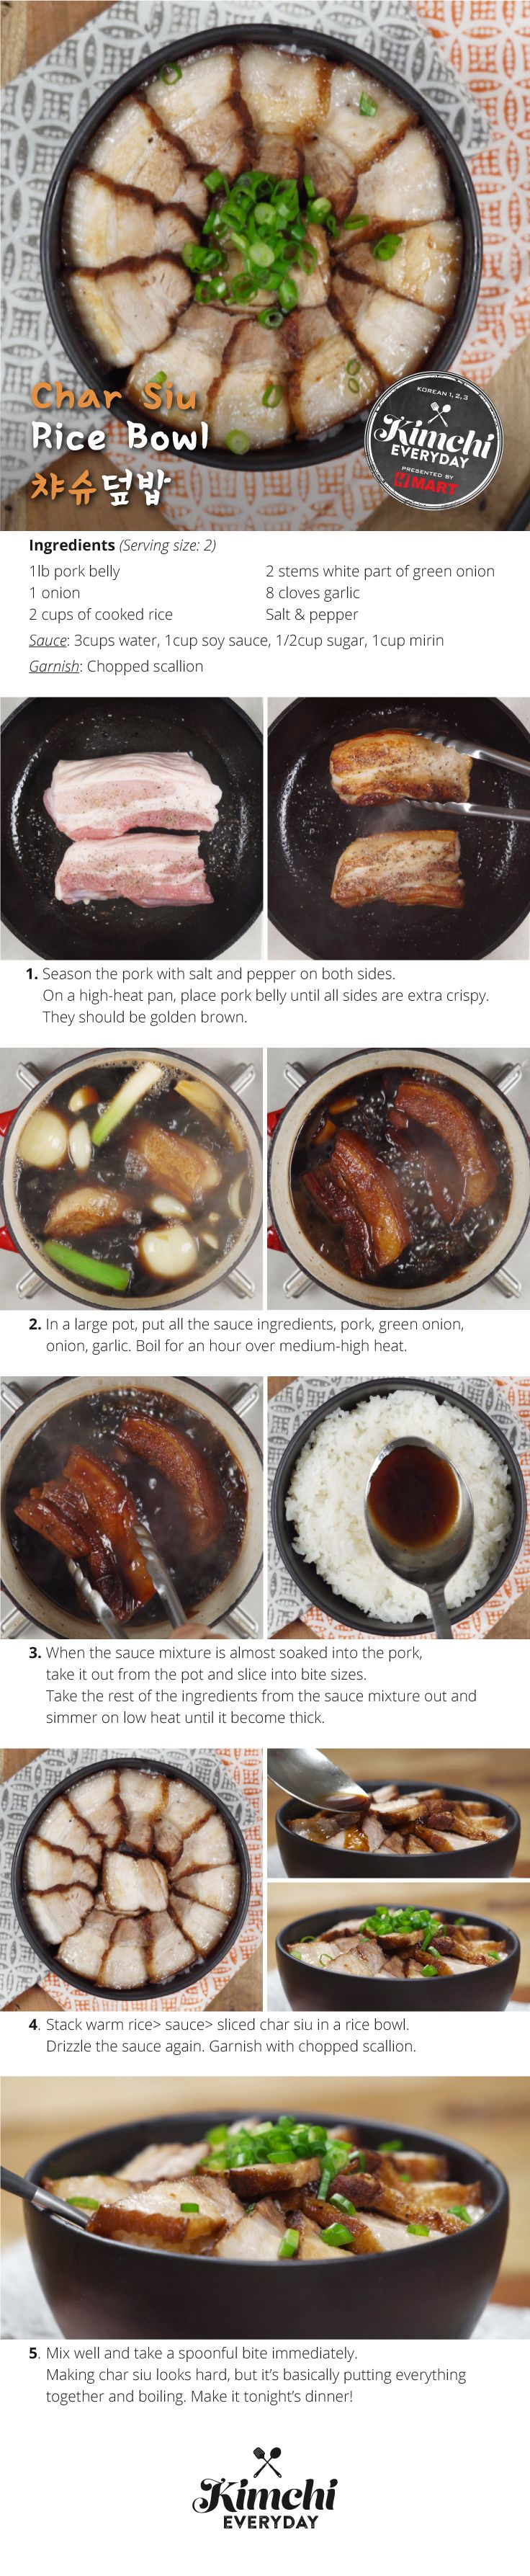 Hmart presents: How to make Char Siu Ramen Bowl